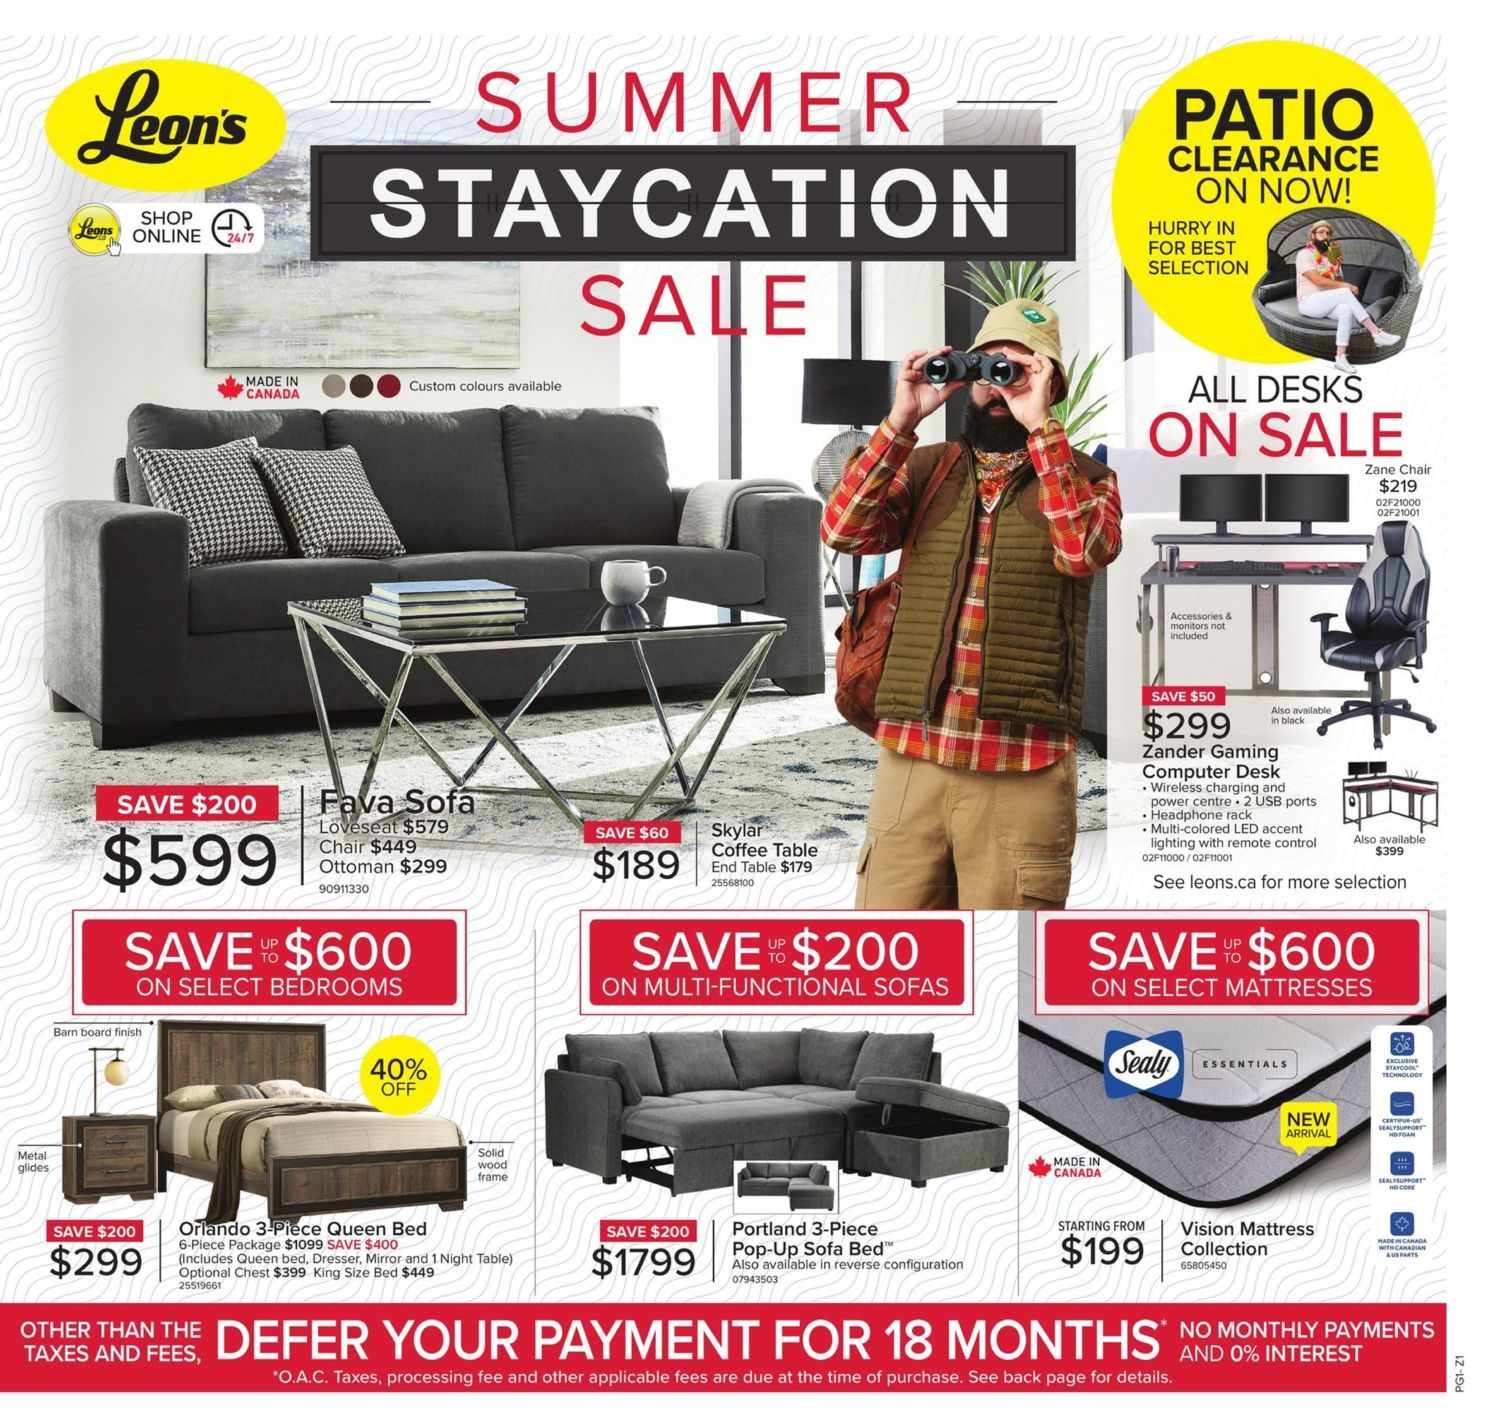 Leon's - Summer Staycation Sale